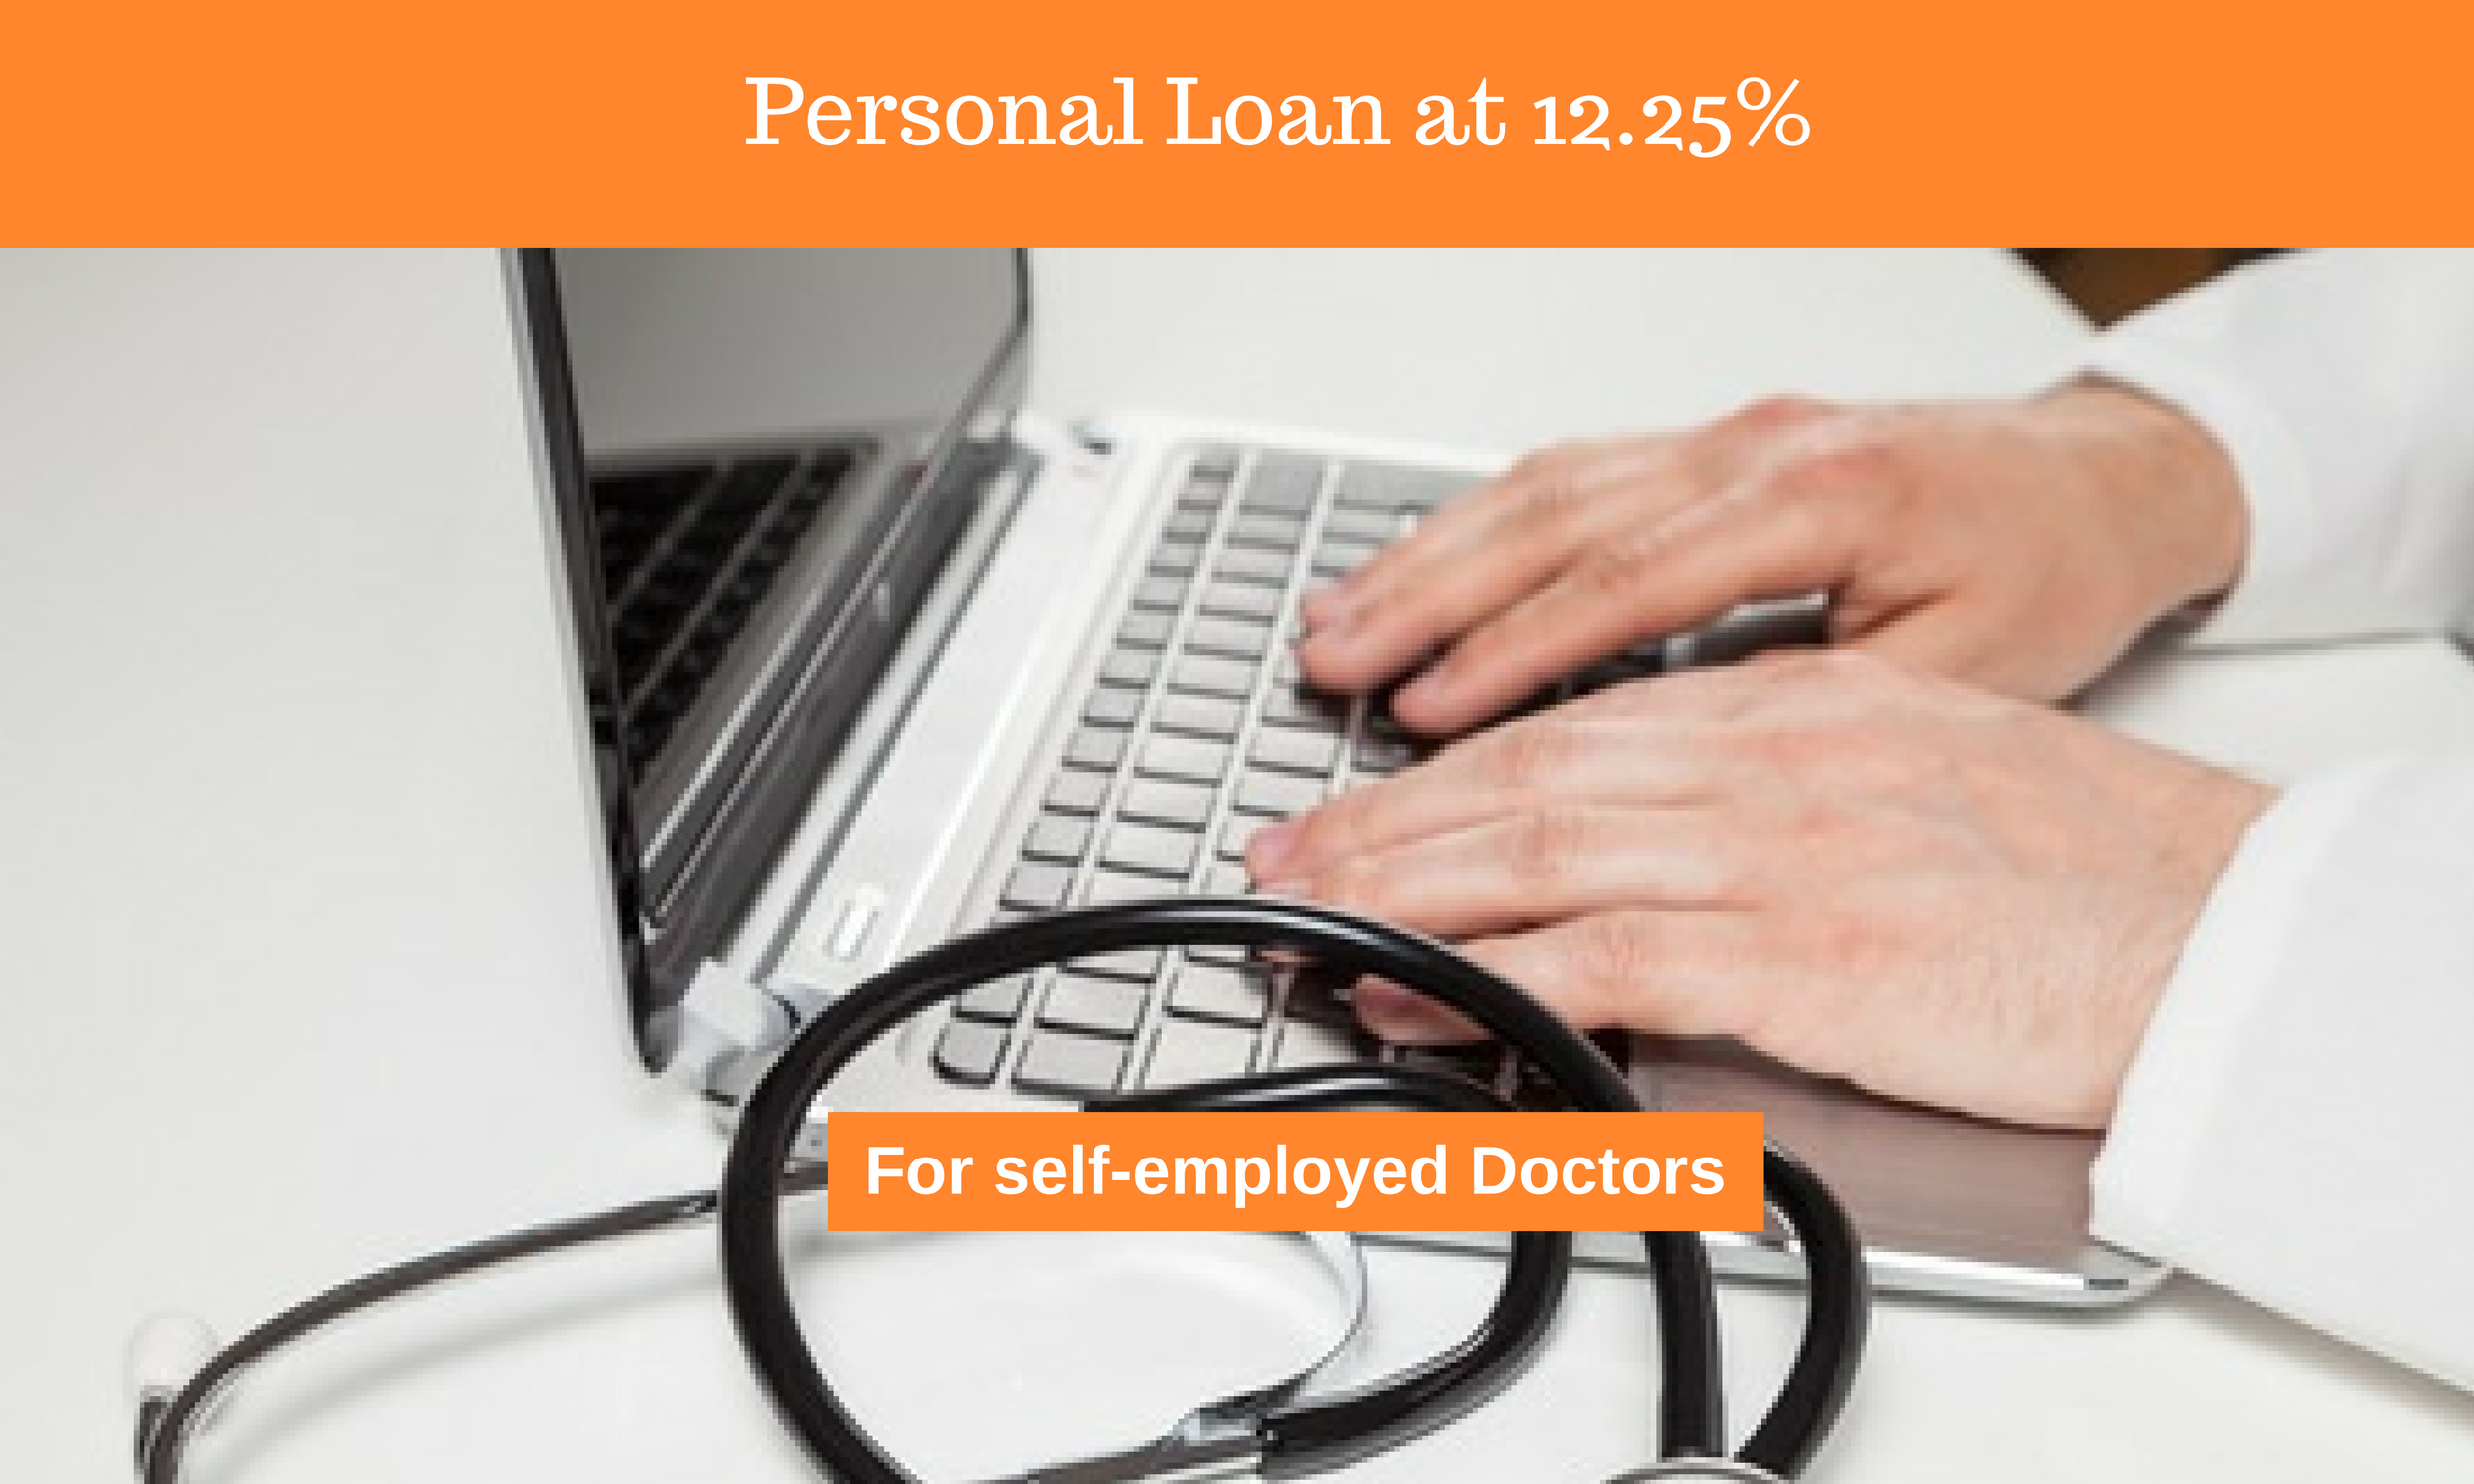 PL at 12.25% for Self Employed Doctors